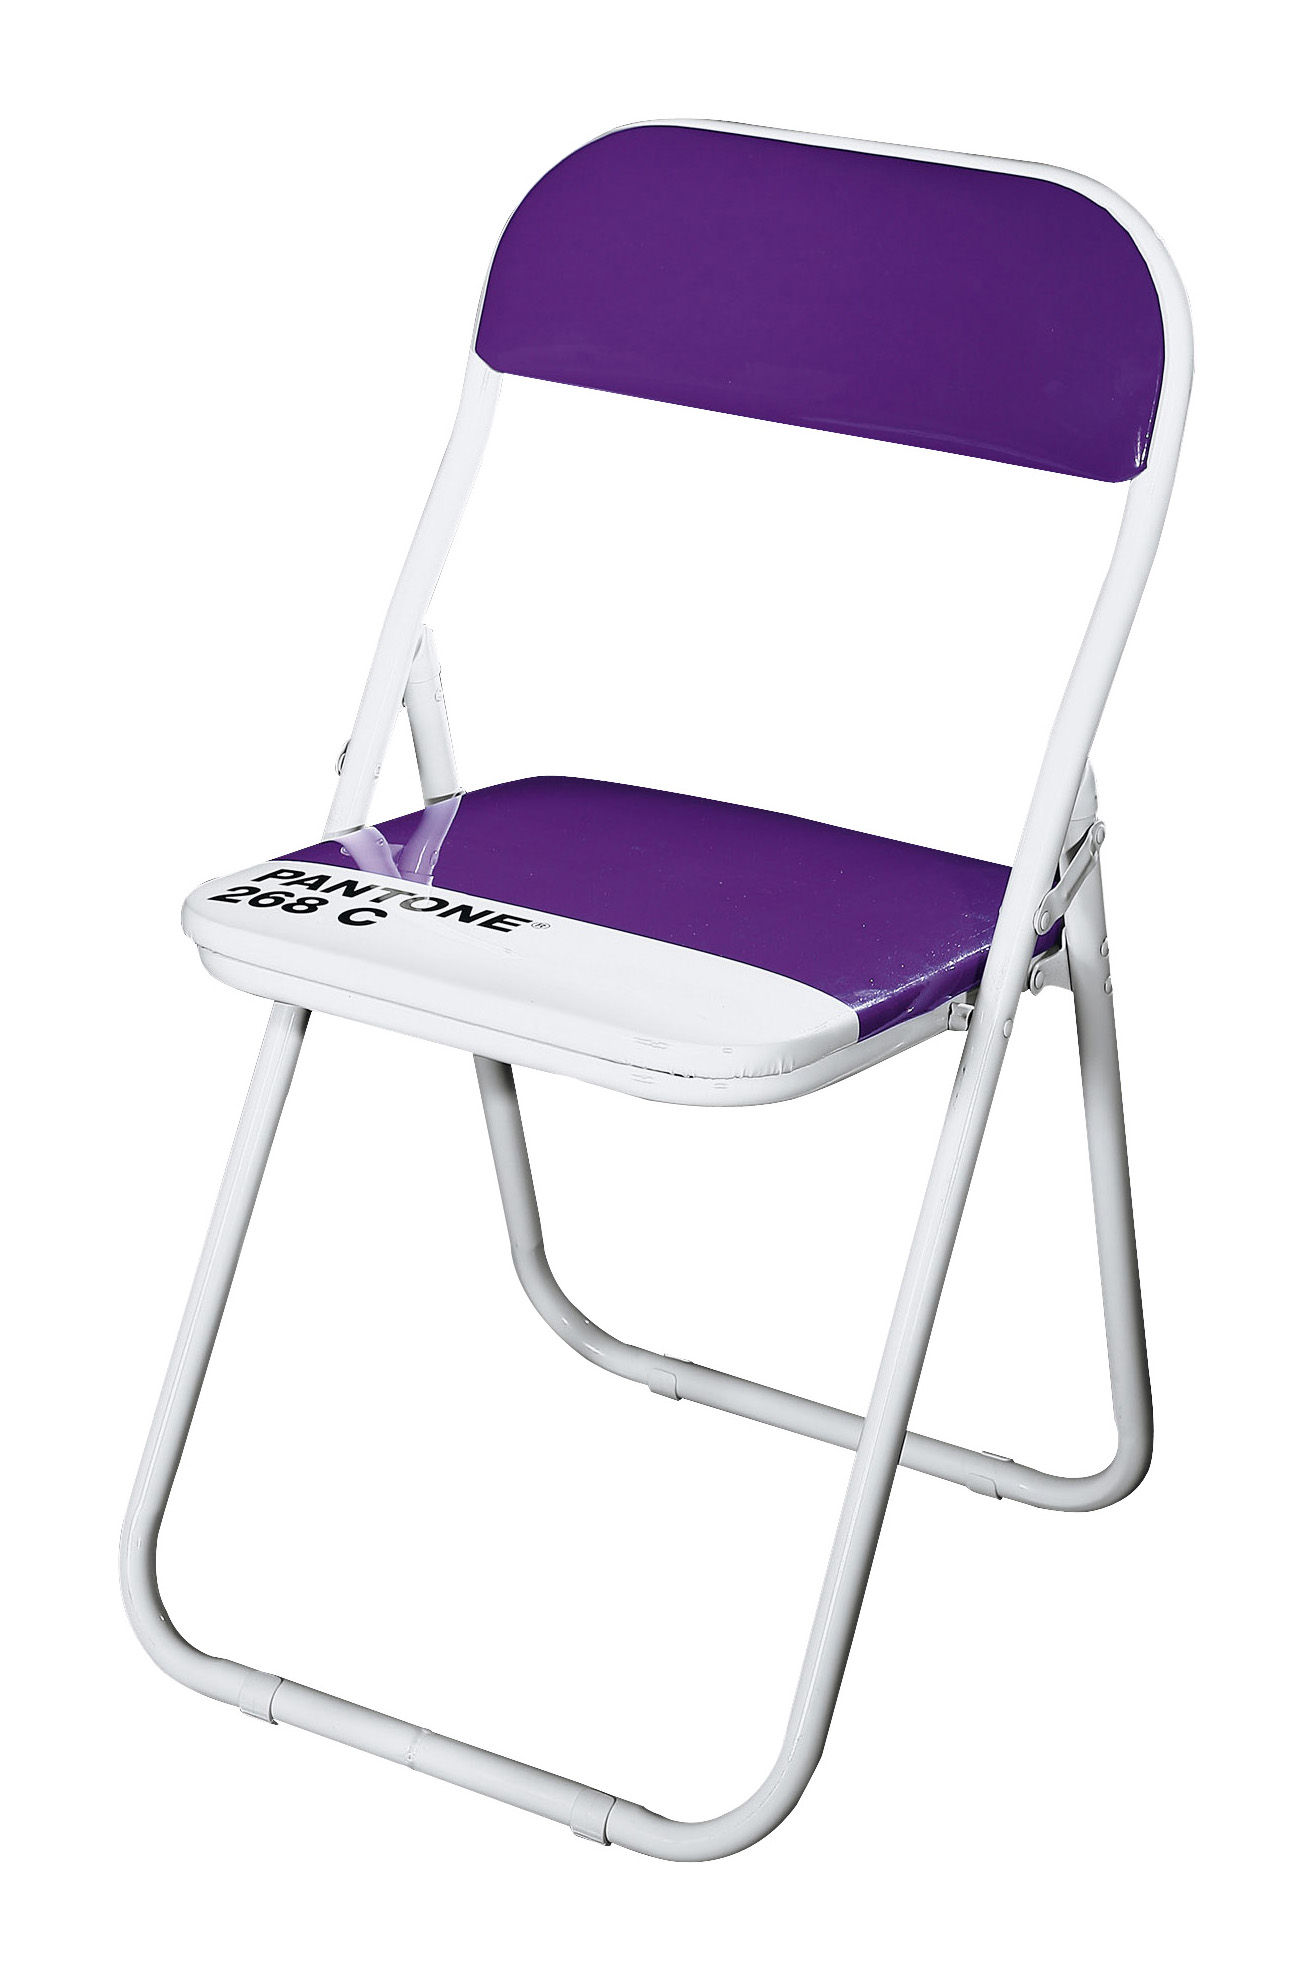 Kids Folding Chair Pantone Children 39s Chair Folding Chair For Kid 268c